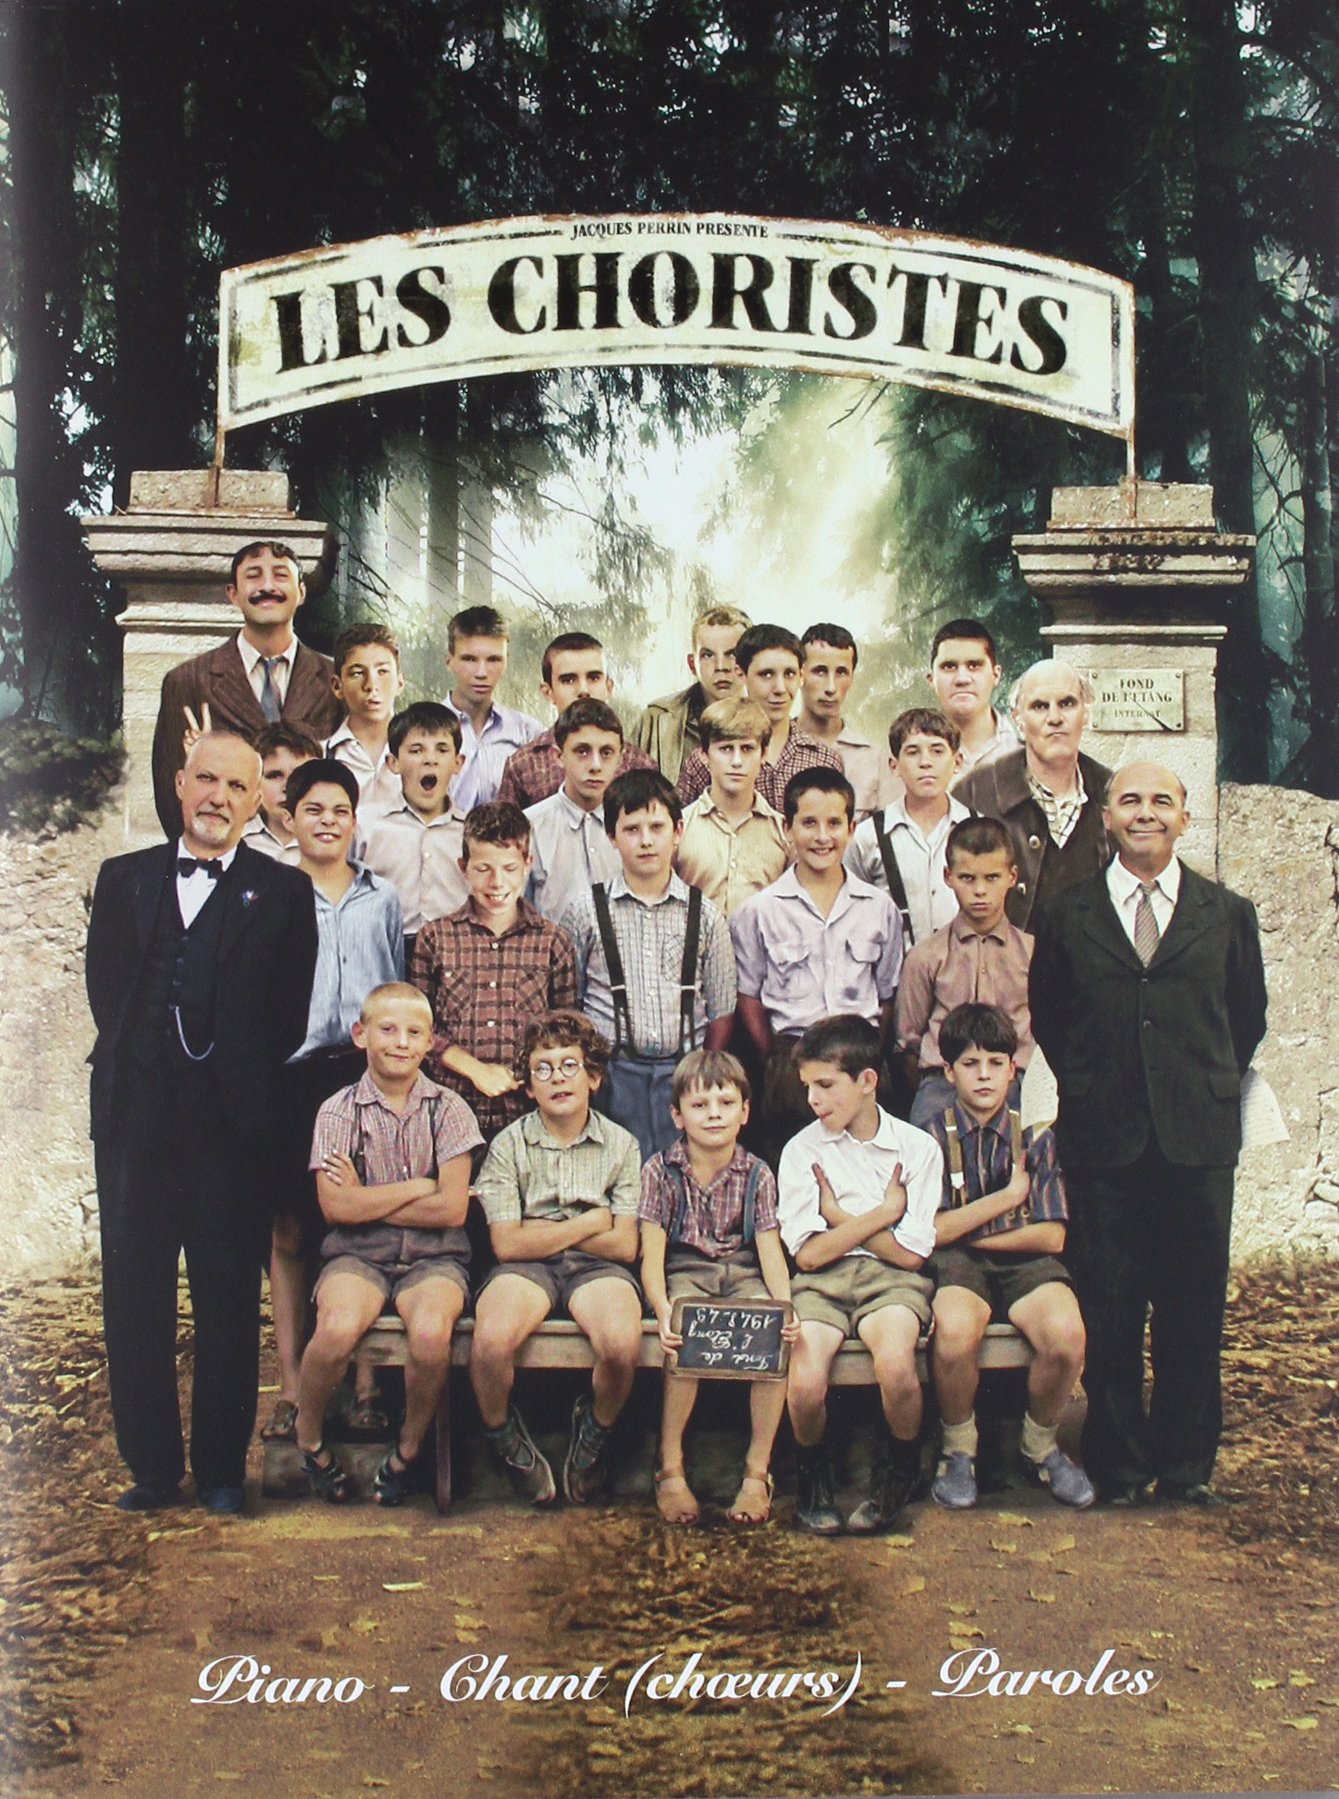 Download Les Choristes - bande originale du film (French Edition) pdf